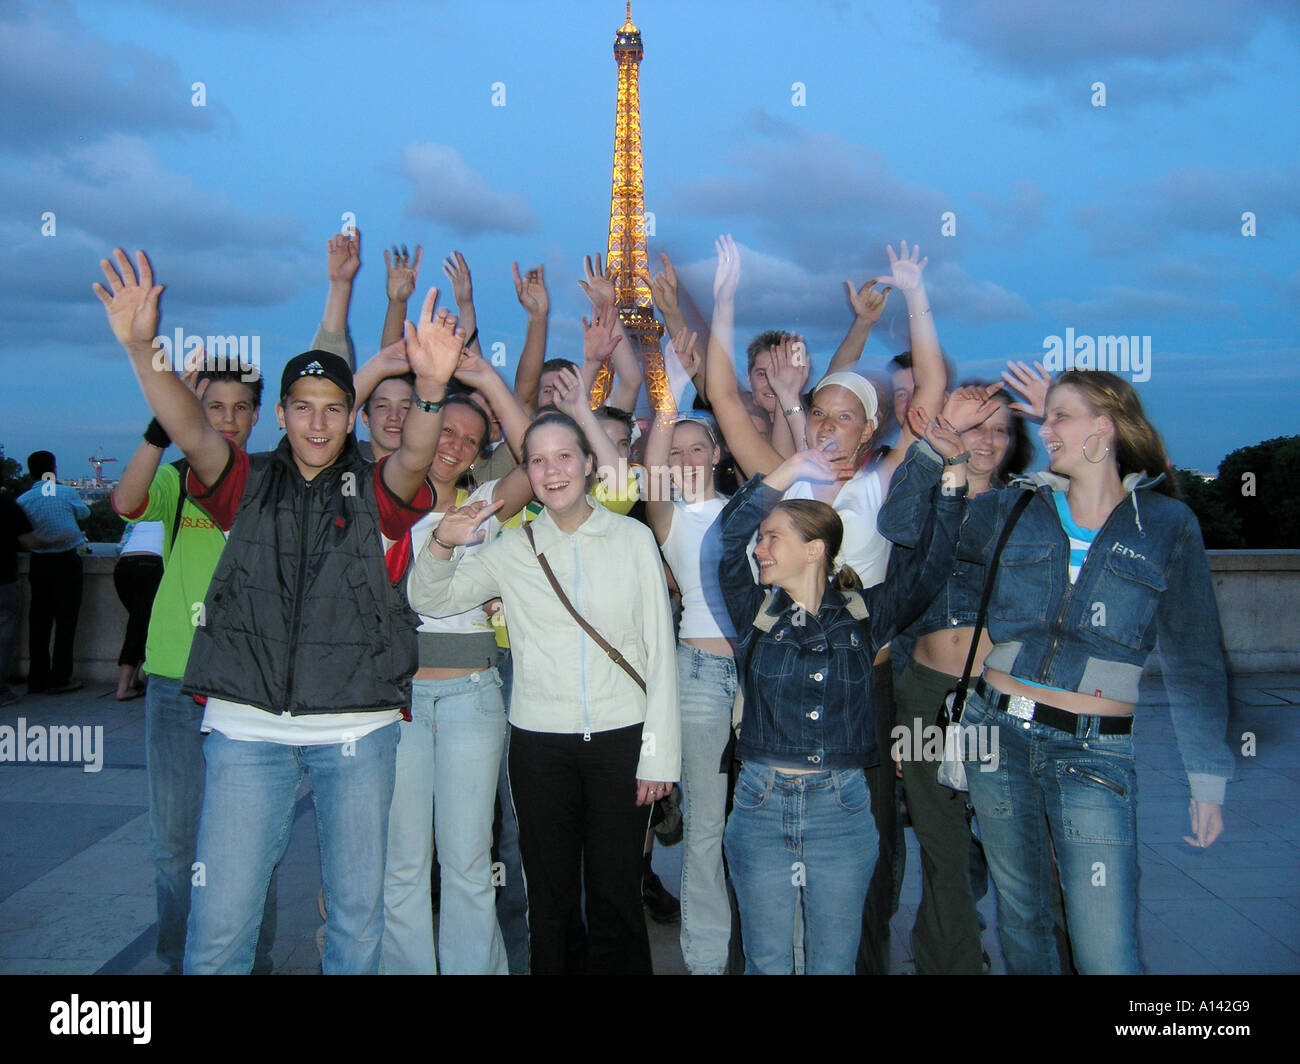 snapshot of teenage school group waving at the camera in front of Eiffel Tower at dusk Paris France Stock Photo